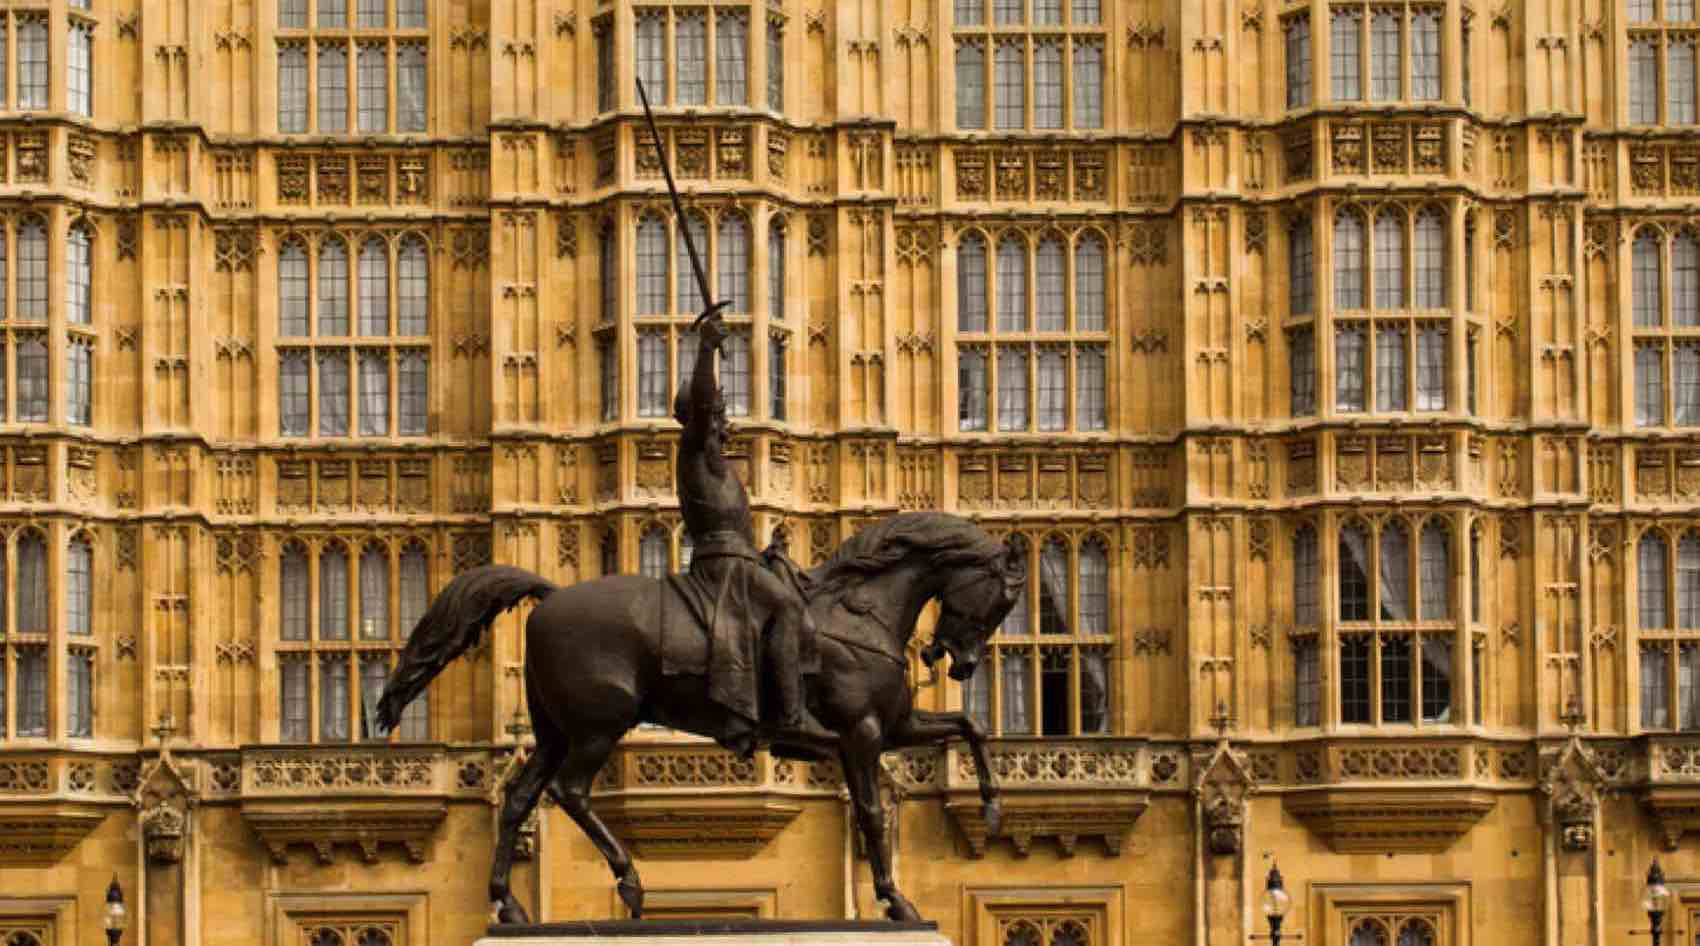 Statue of King Richard the Lionheart, the crusader king outside the Houses of Parliament, Westminster. Seated on his horse with his sword drawn.